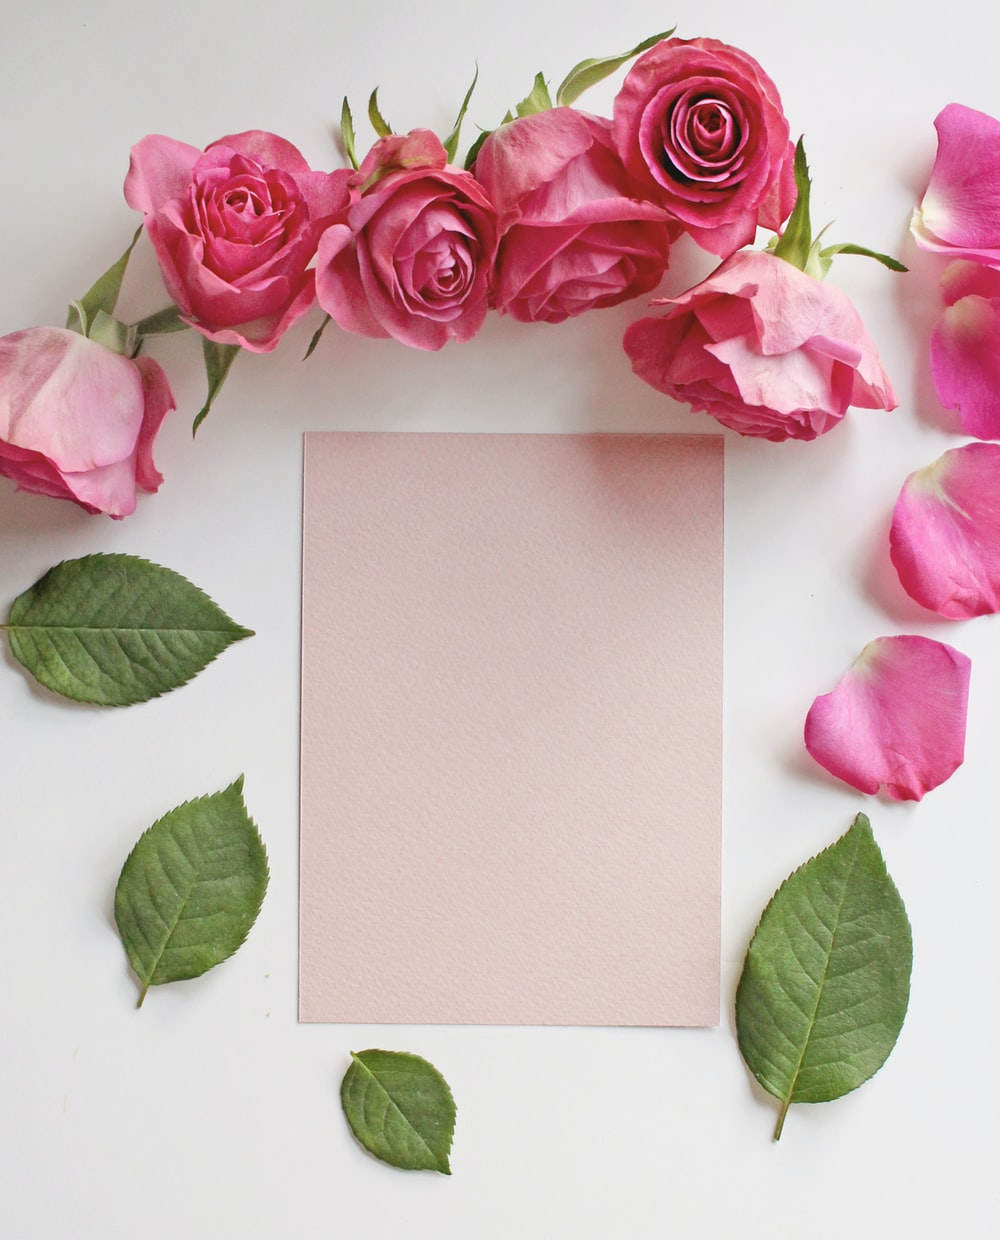 pink roses beside white paper